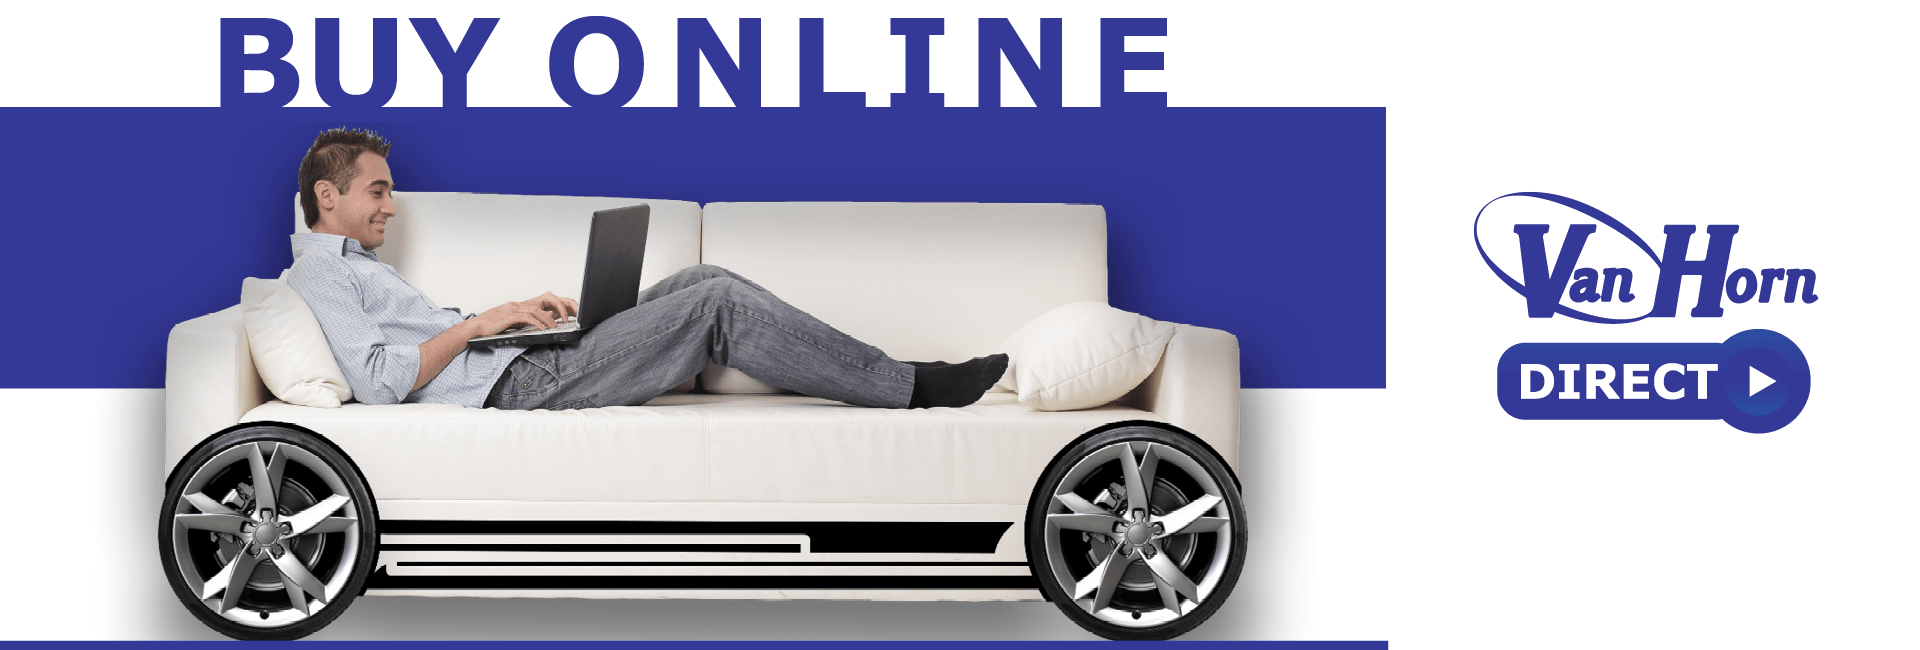 Buy Online with Van Horn Direct